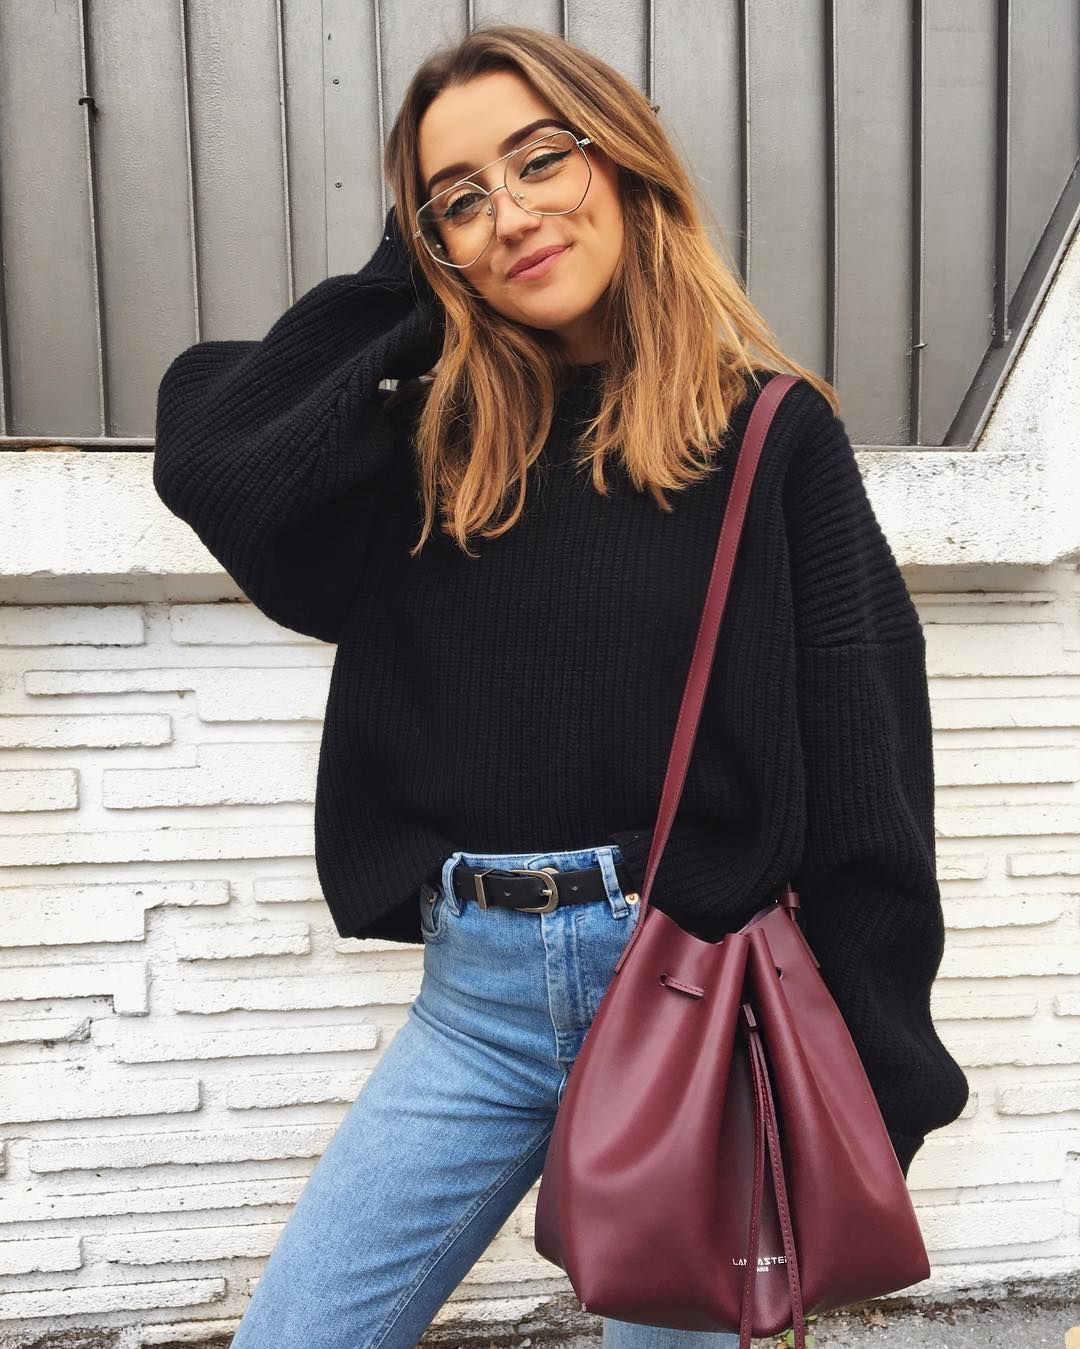 Oversized black sweater, high waisted jeans and burgundy handbag.